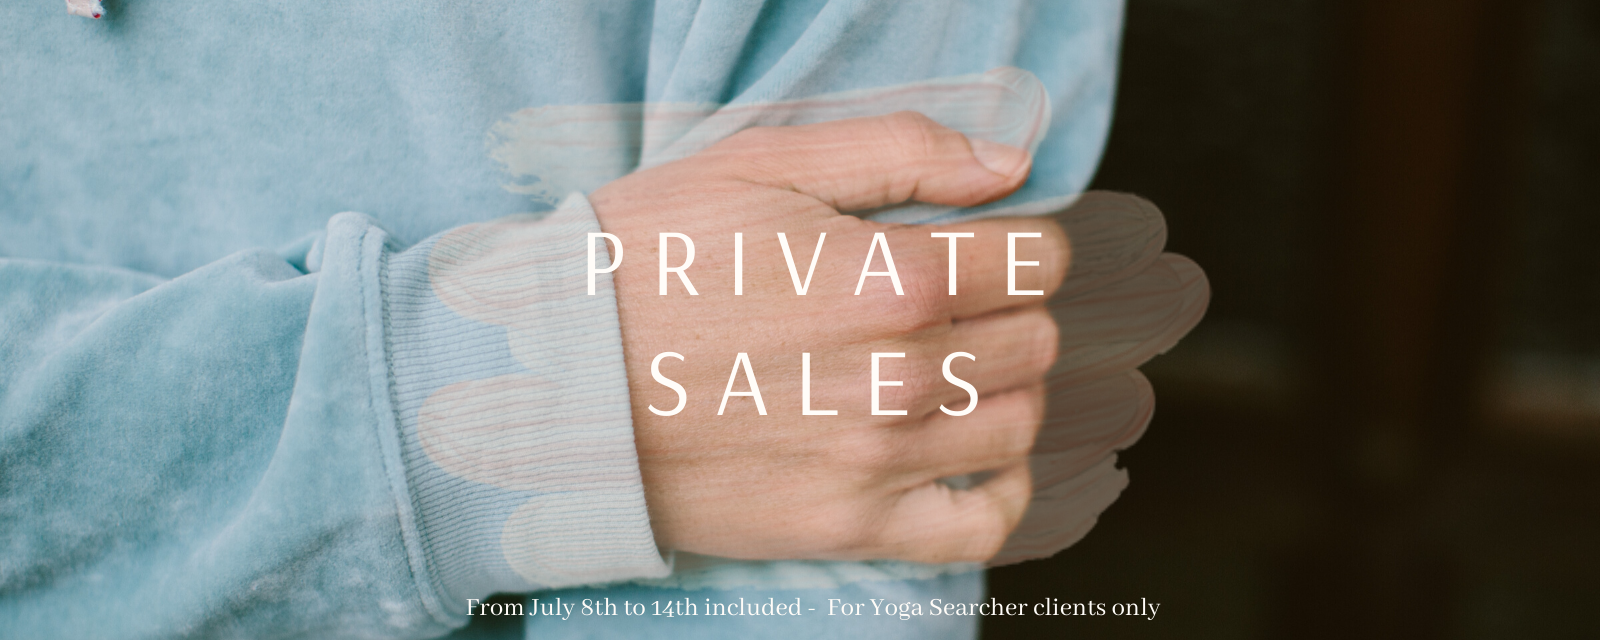 Yoga Searcher private sales